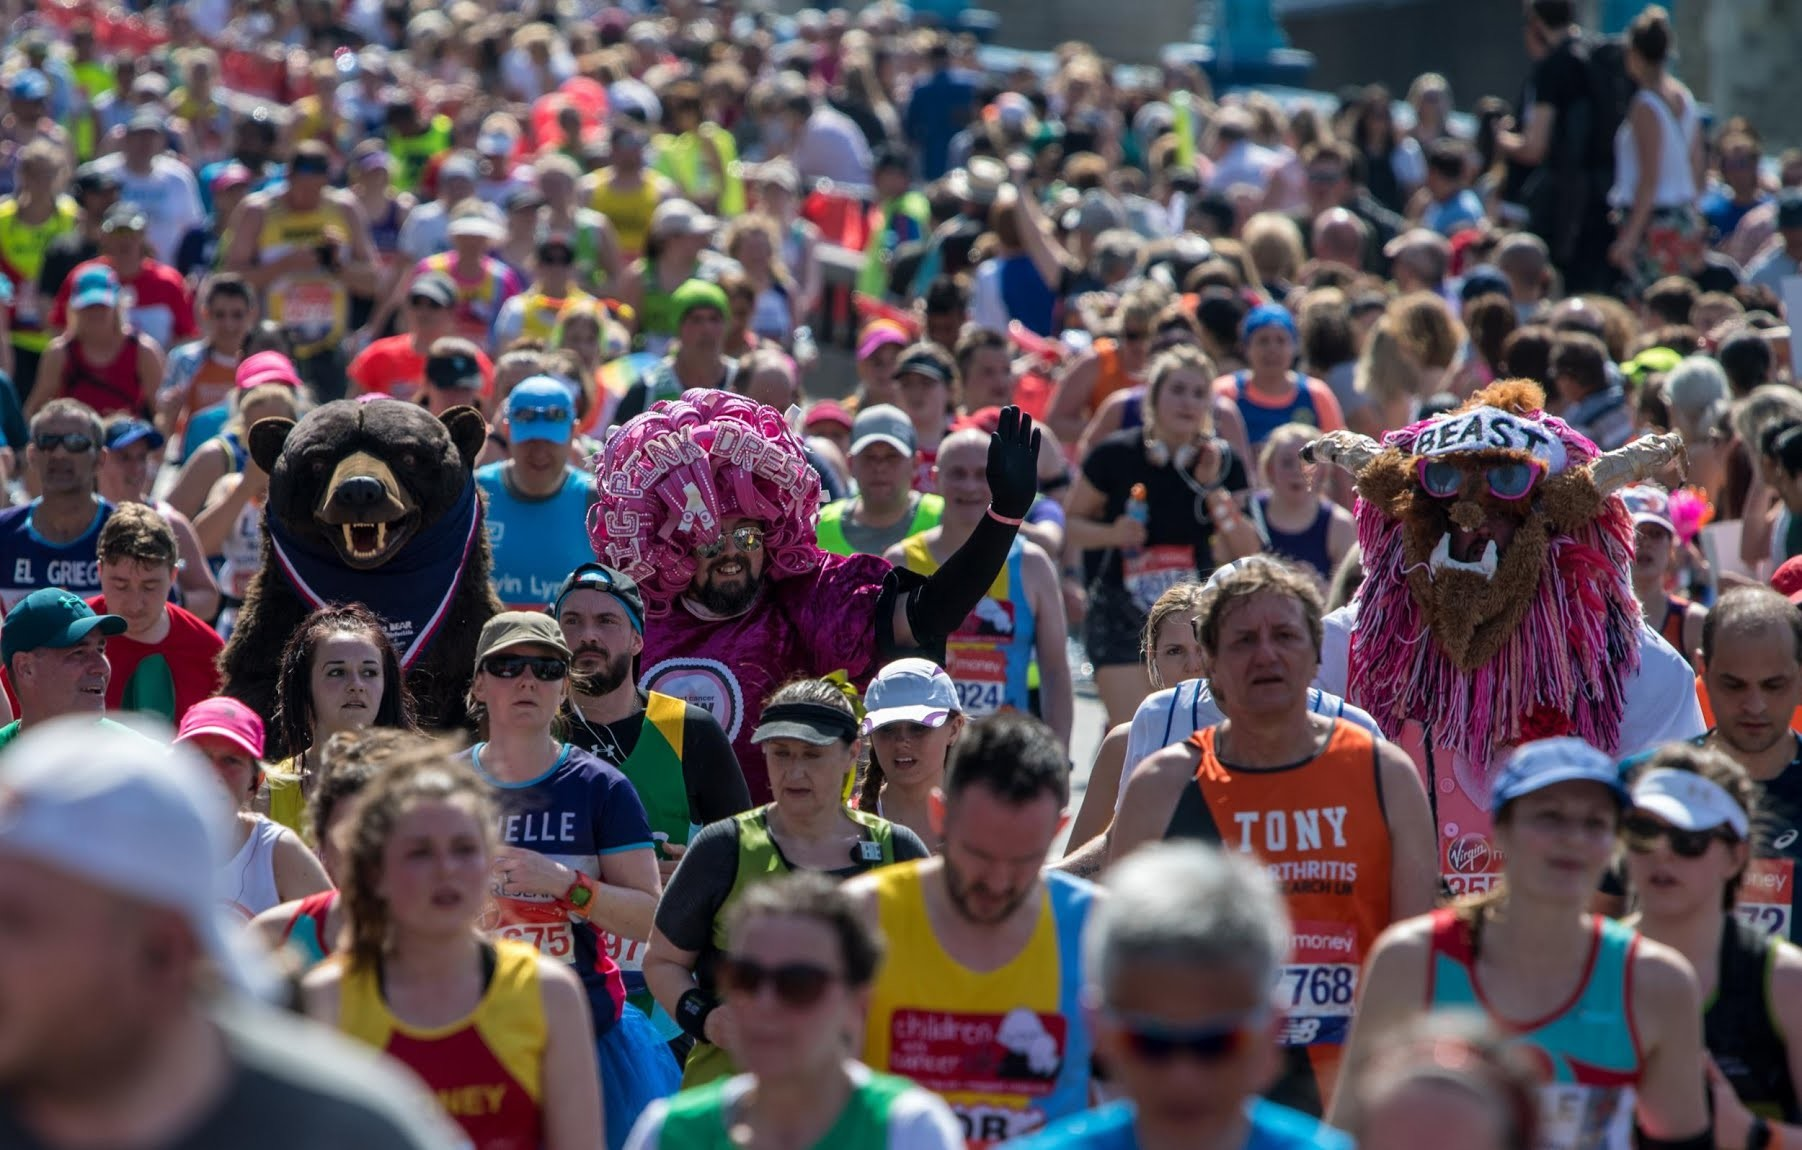 Time is already running out to get entered into the 2019 London Marathon